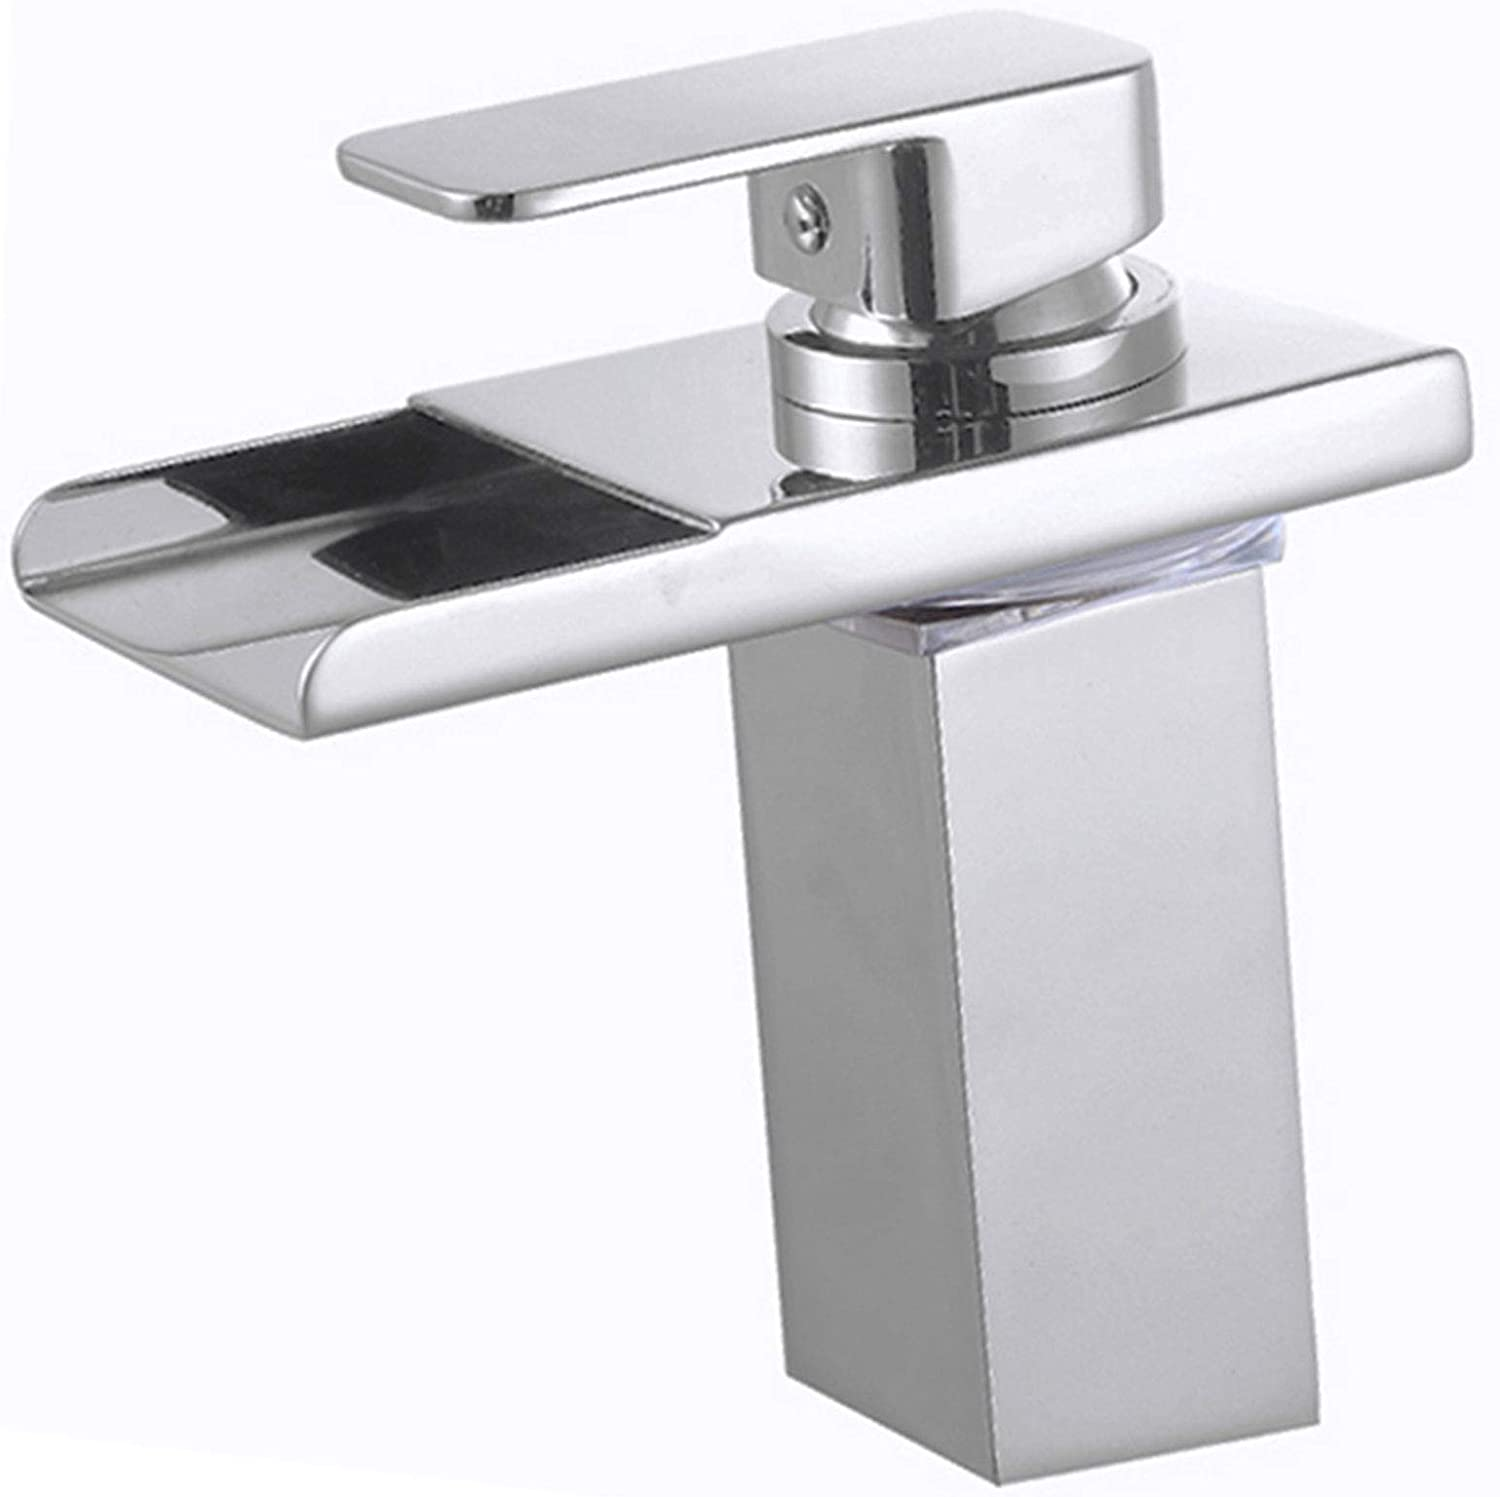 Brushed Nickel Basin Faucet Single Handle /& Hole Waterfall Spout Sink Mixer Taps